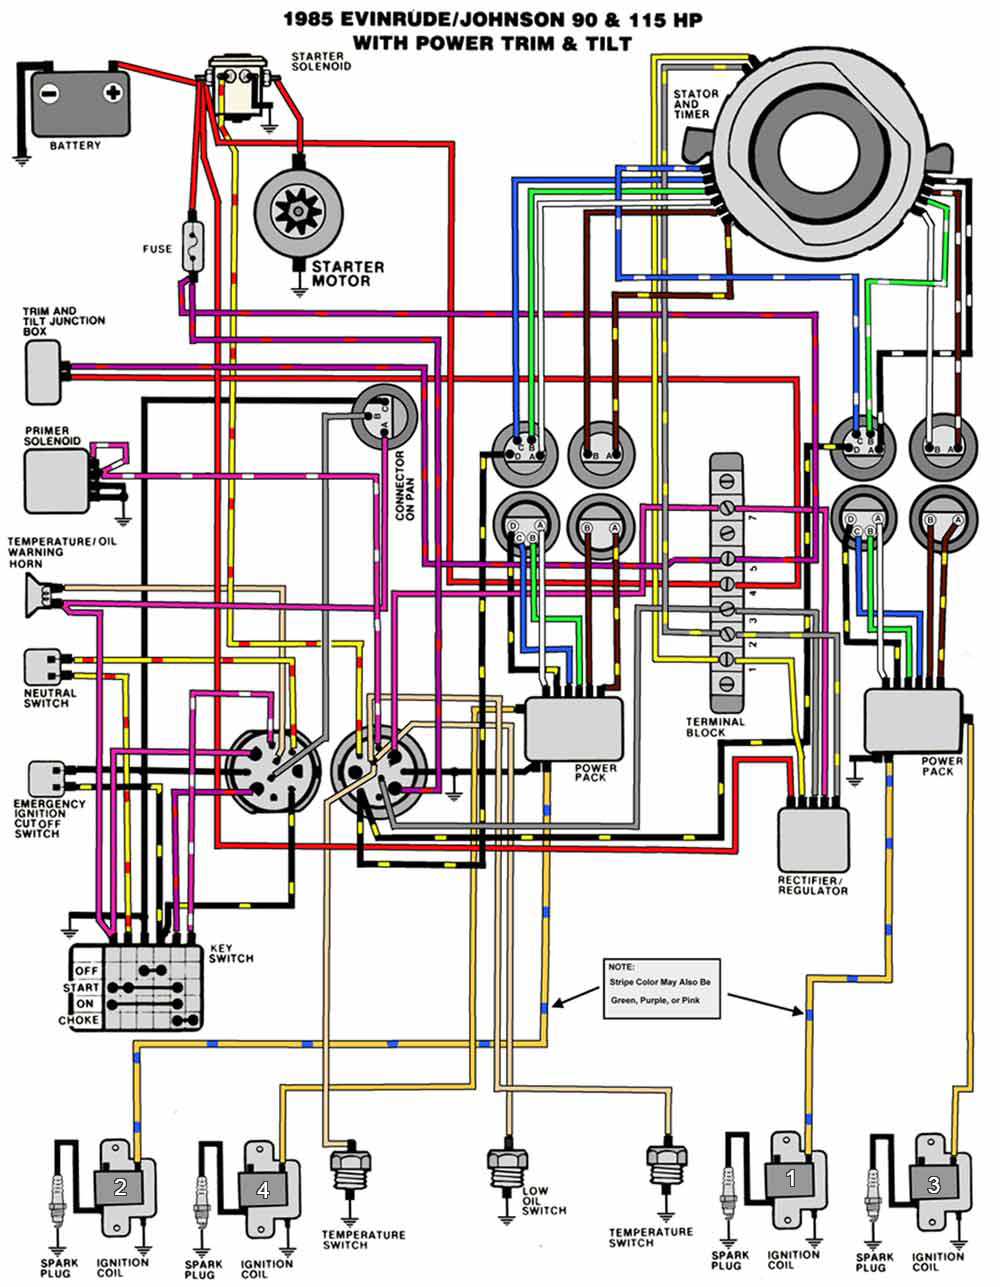 1985_90_115TnT yamaha key switch wiring diagram yamaha cdi wiring diagram johnson outboard wiring schematic at webbmarketing.co